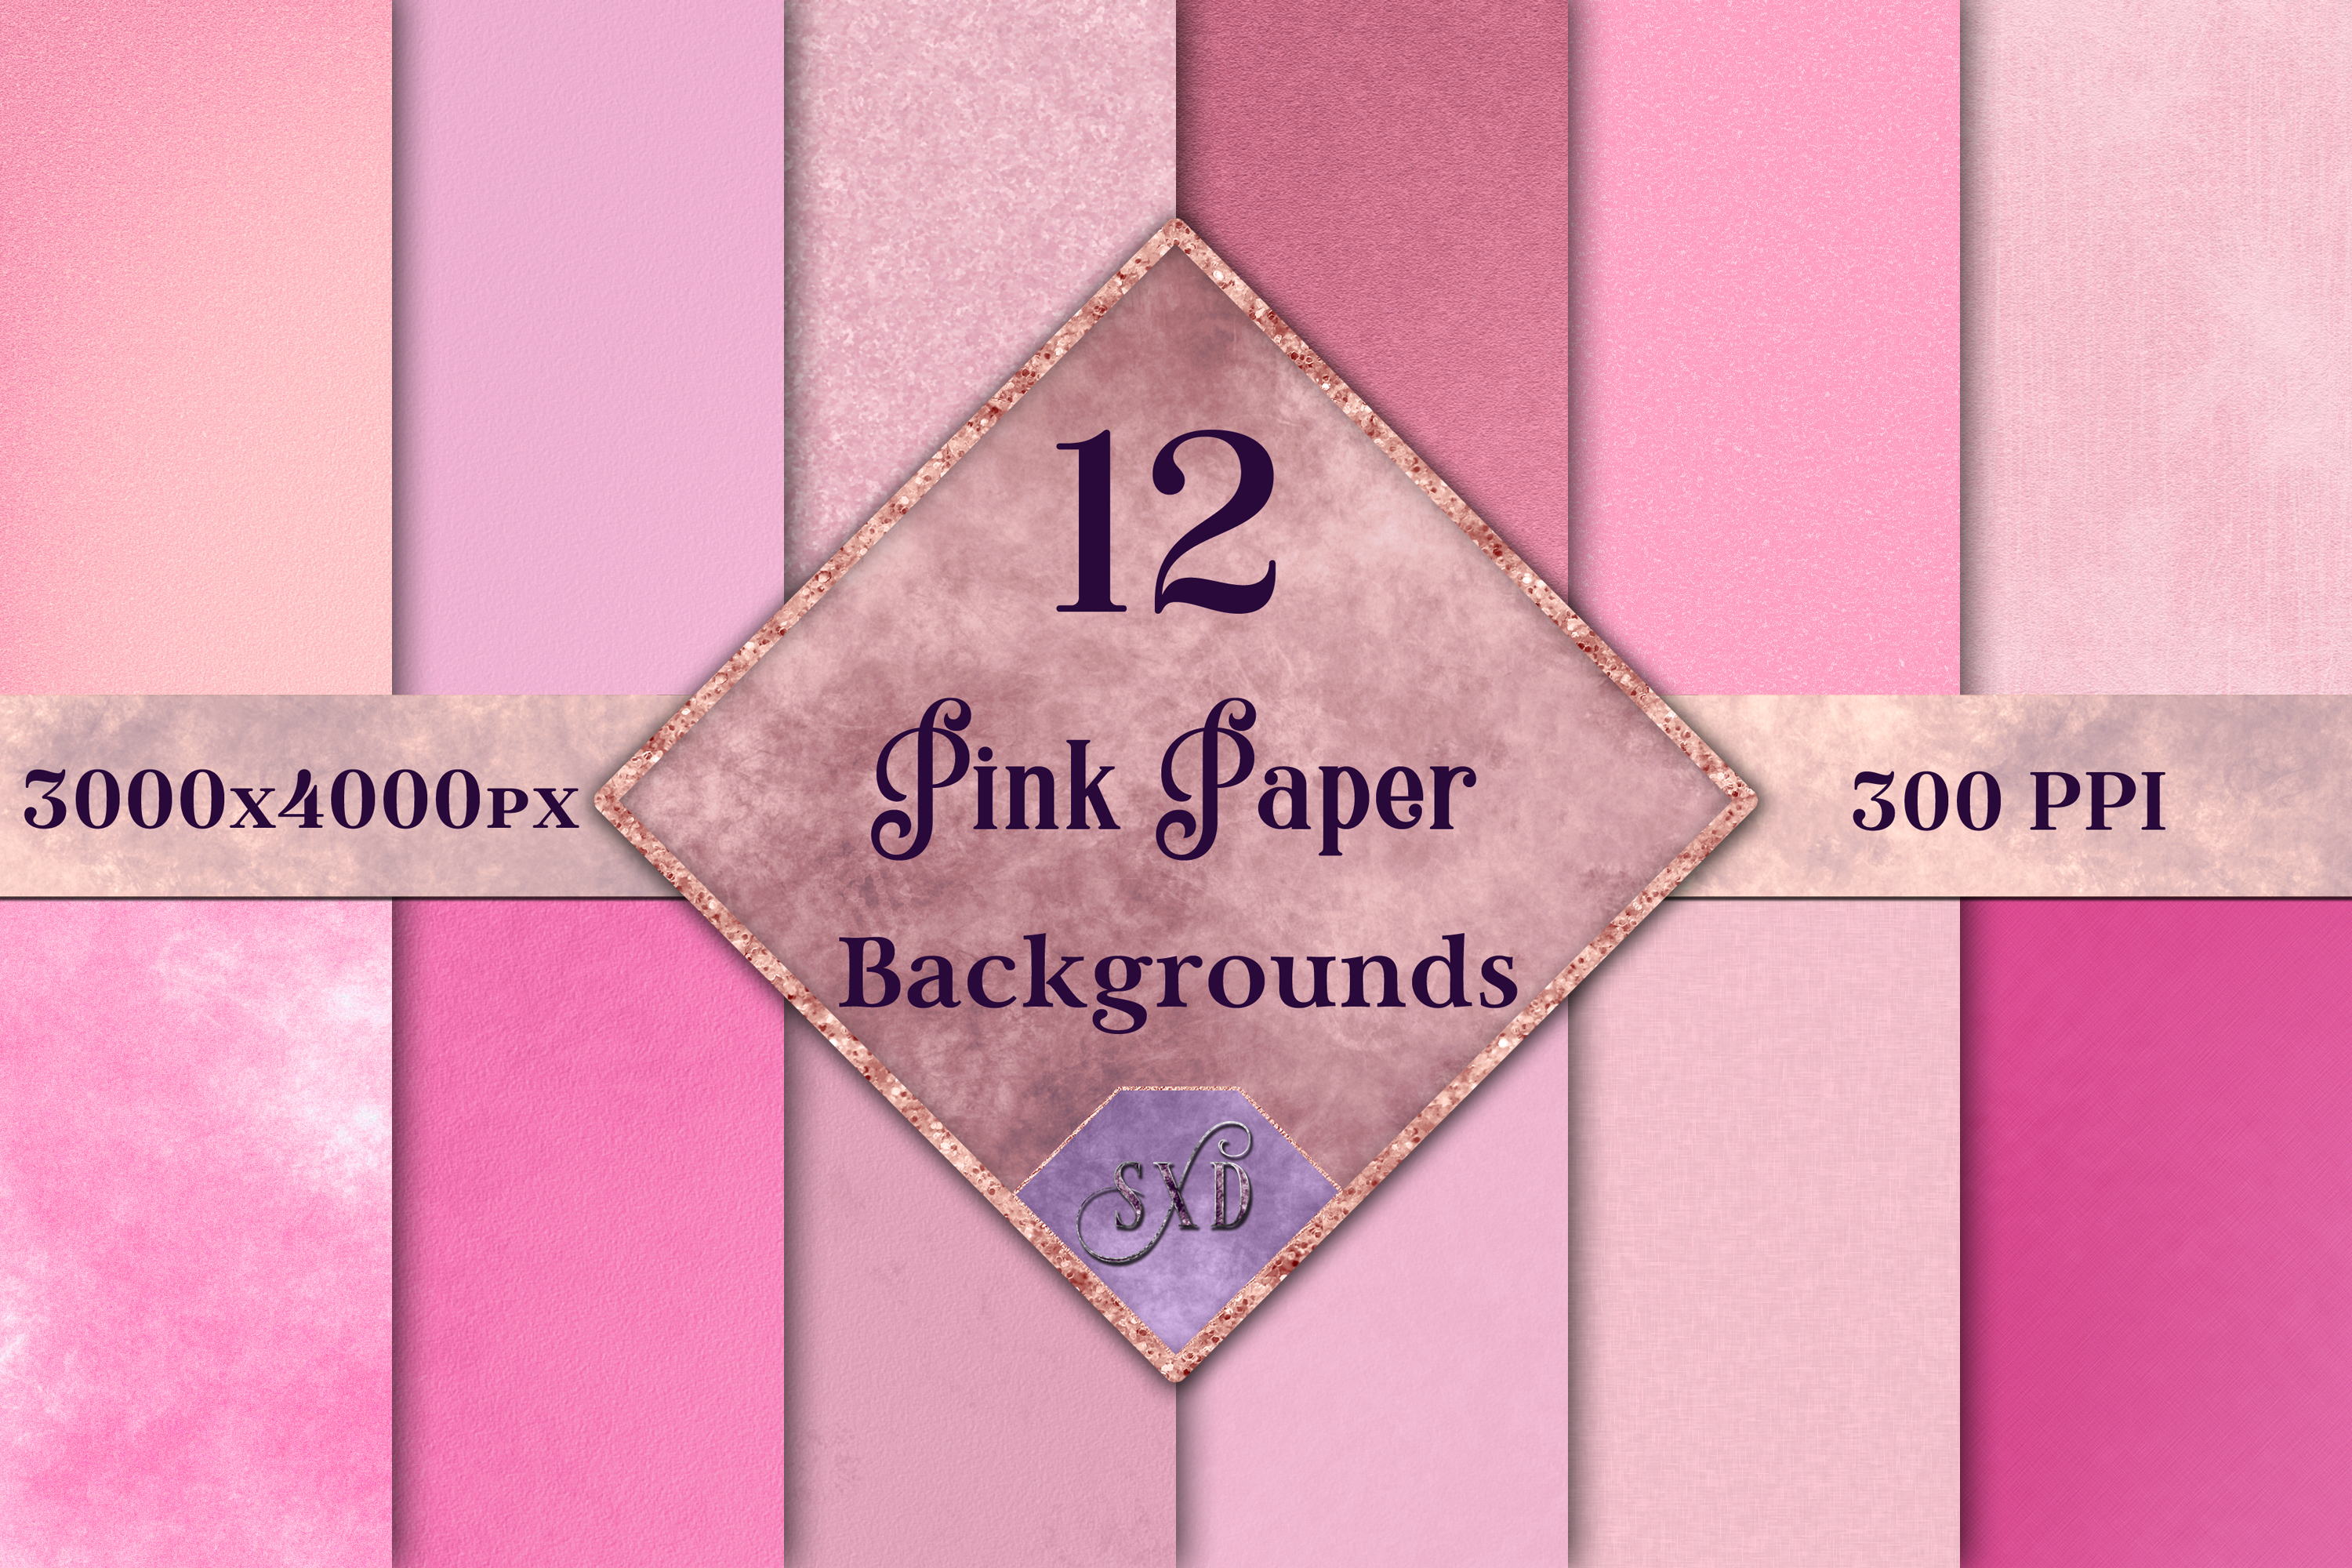 Pink Paper Backgrounds - 12 Image Set example image 1